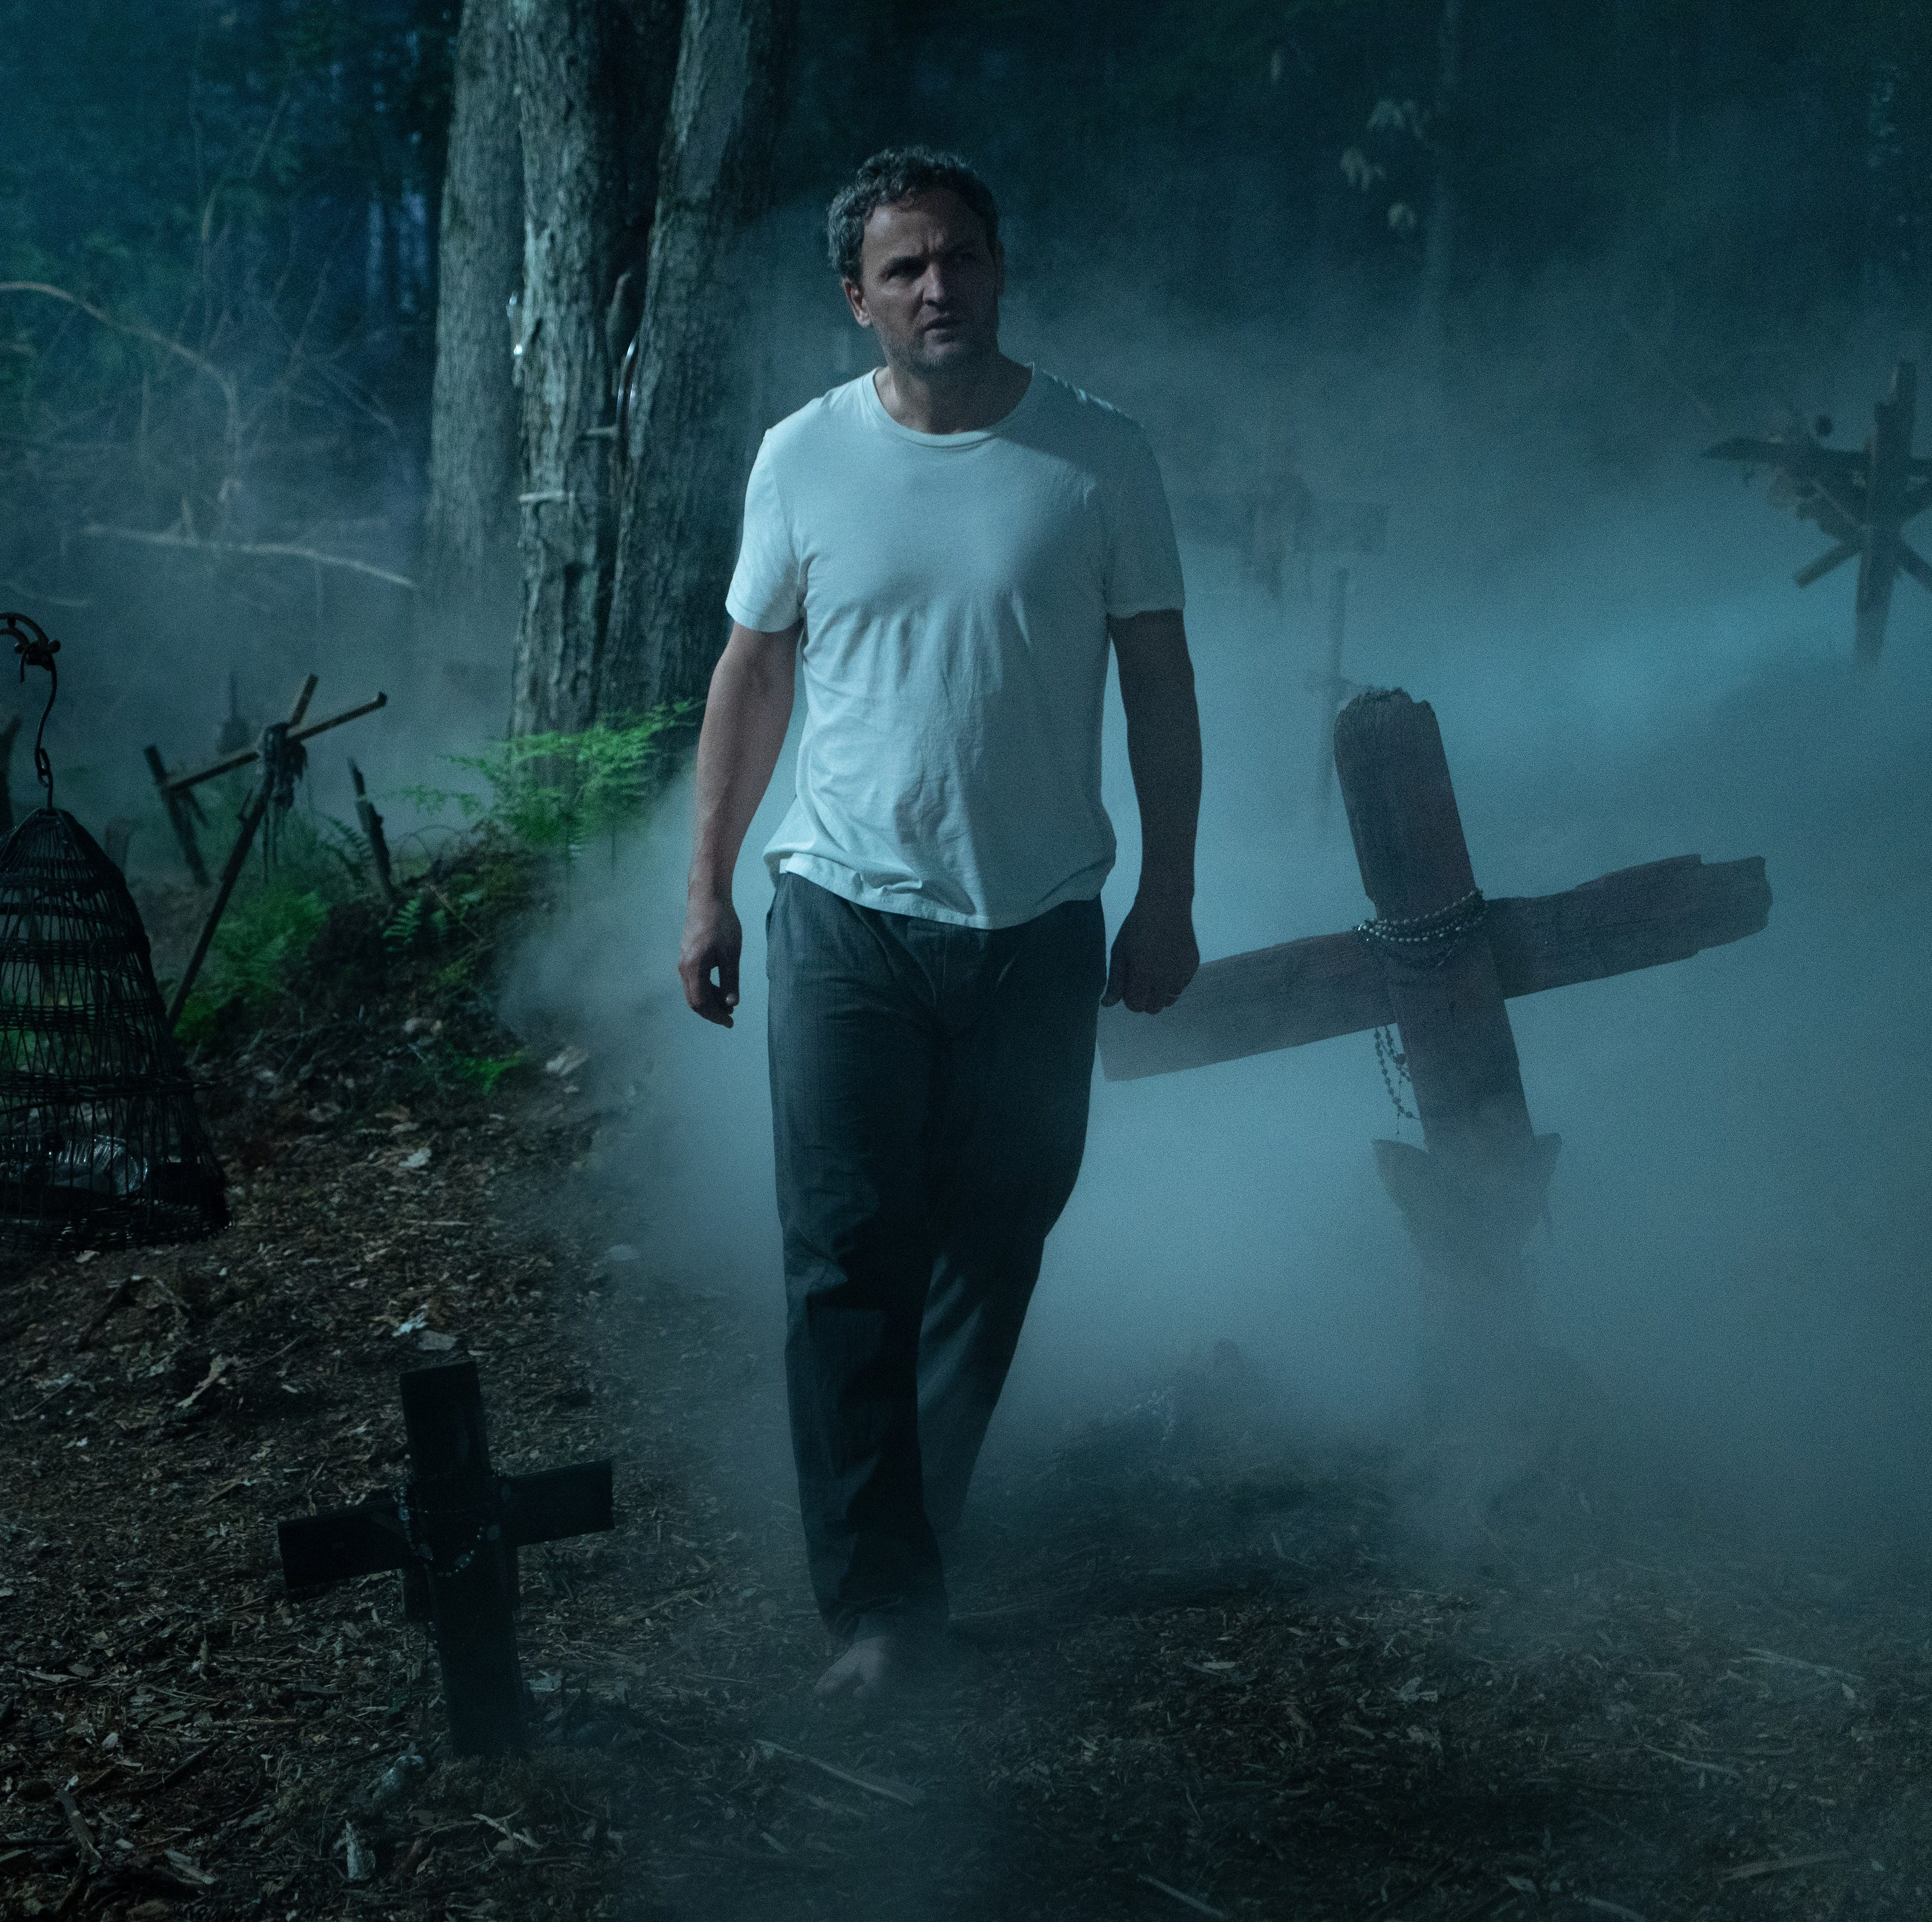 """Jason Clarke stars in """"Pet Sematary."""" From the review: """"You believe in Louis' descent into a kind of madness, which makes you buy into the story."""" (4 stars)"""